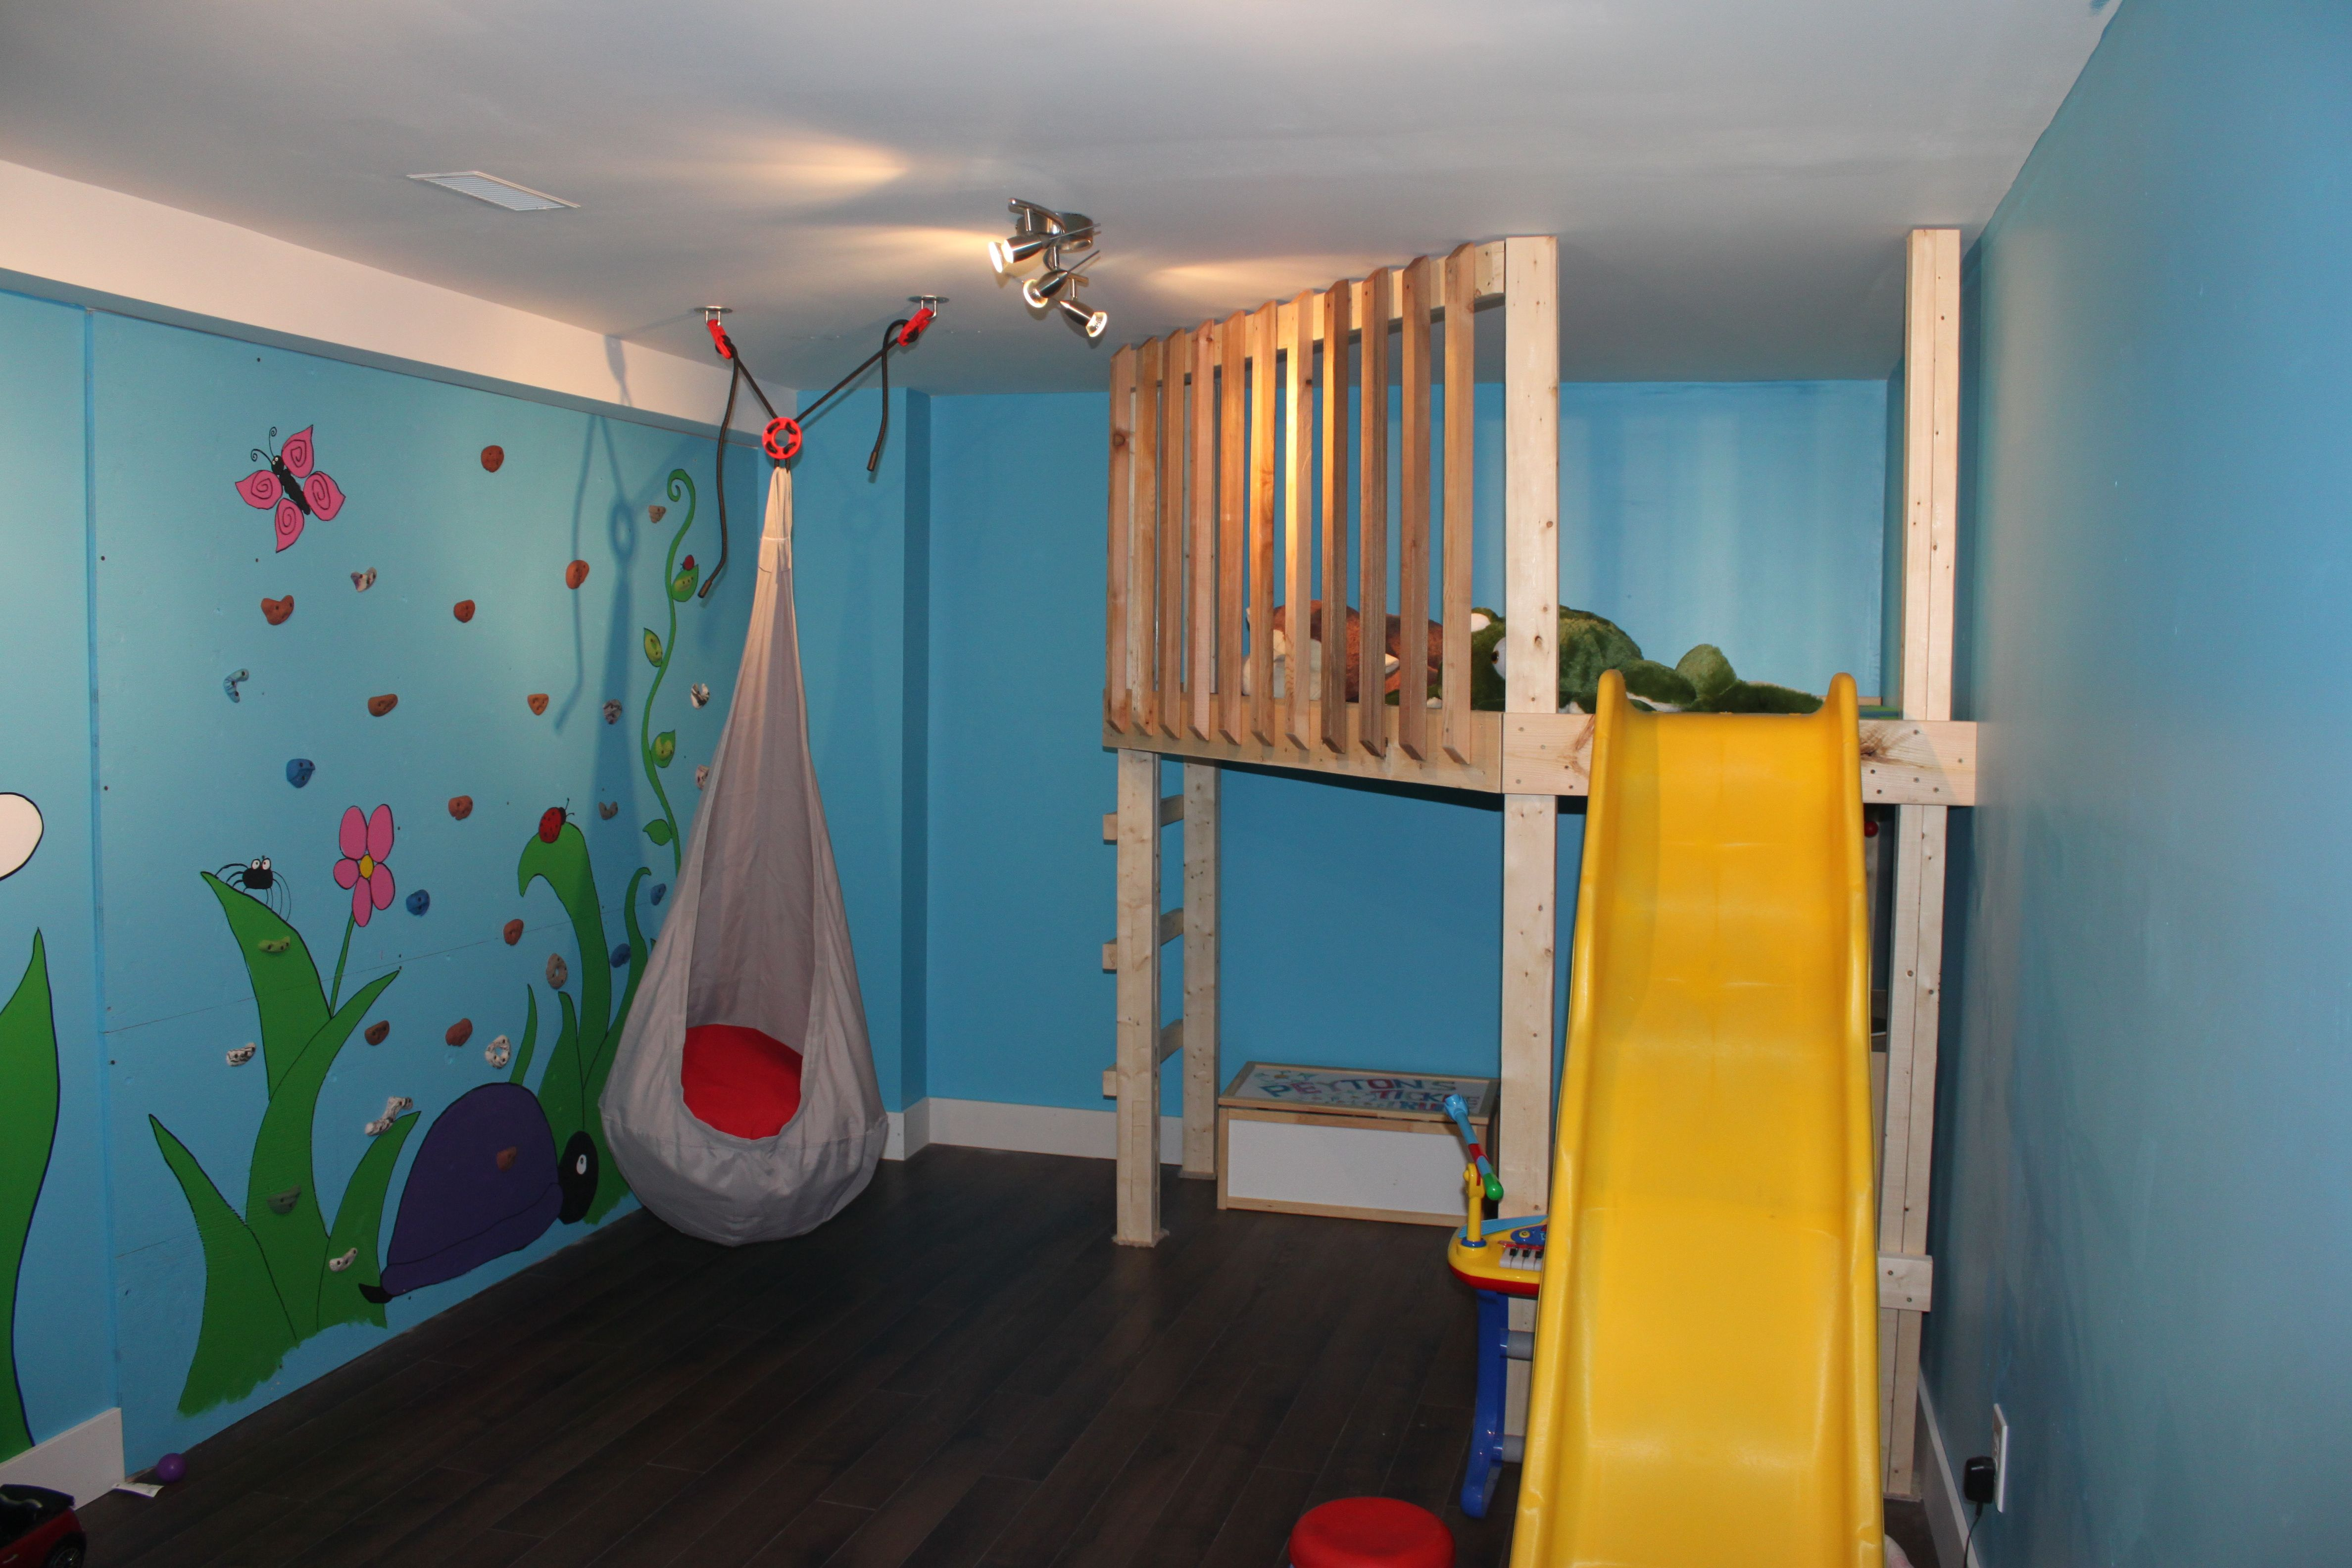 We design and build custom play structures, forts, climbing walls ect. Murals,brightly painted structures, projects for inside or outside. Also will assemble pre-purchased structures, price varies depending on size.  Call or e-mail for information and estimates. Daryl and Jennifer 613-878-1816 darylcalver@hotmail.com